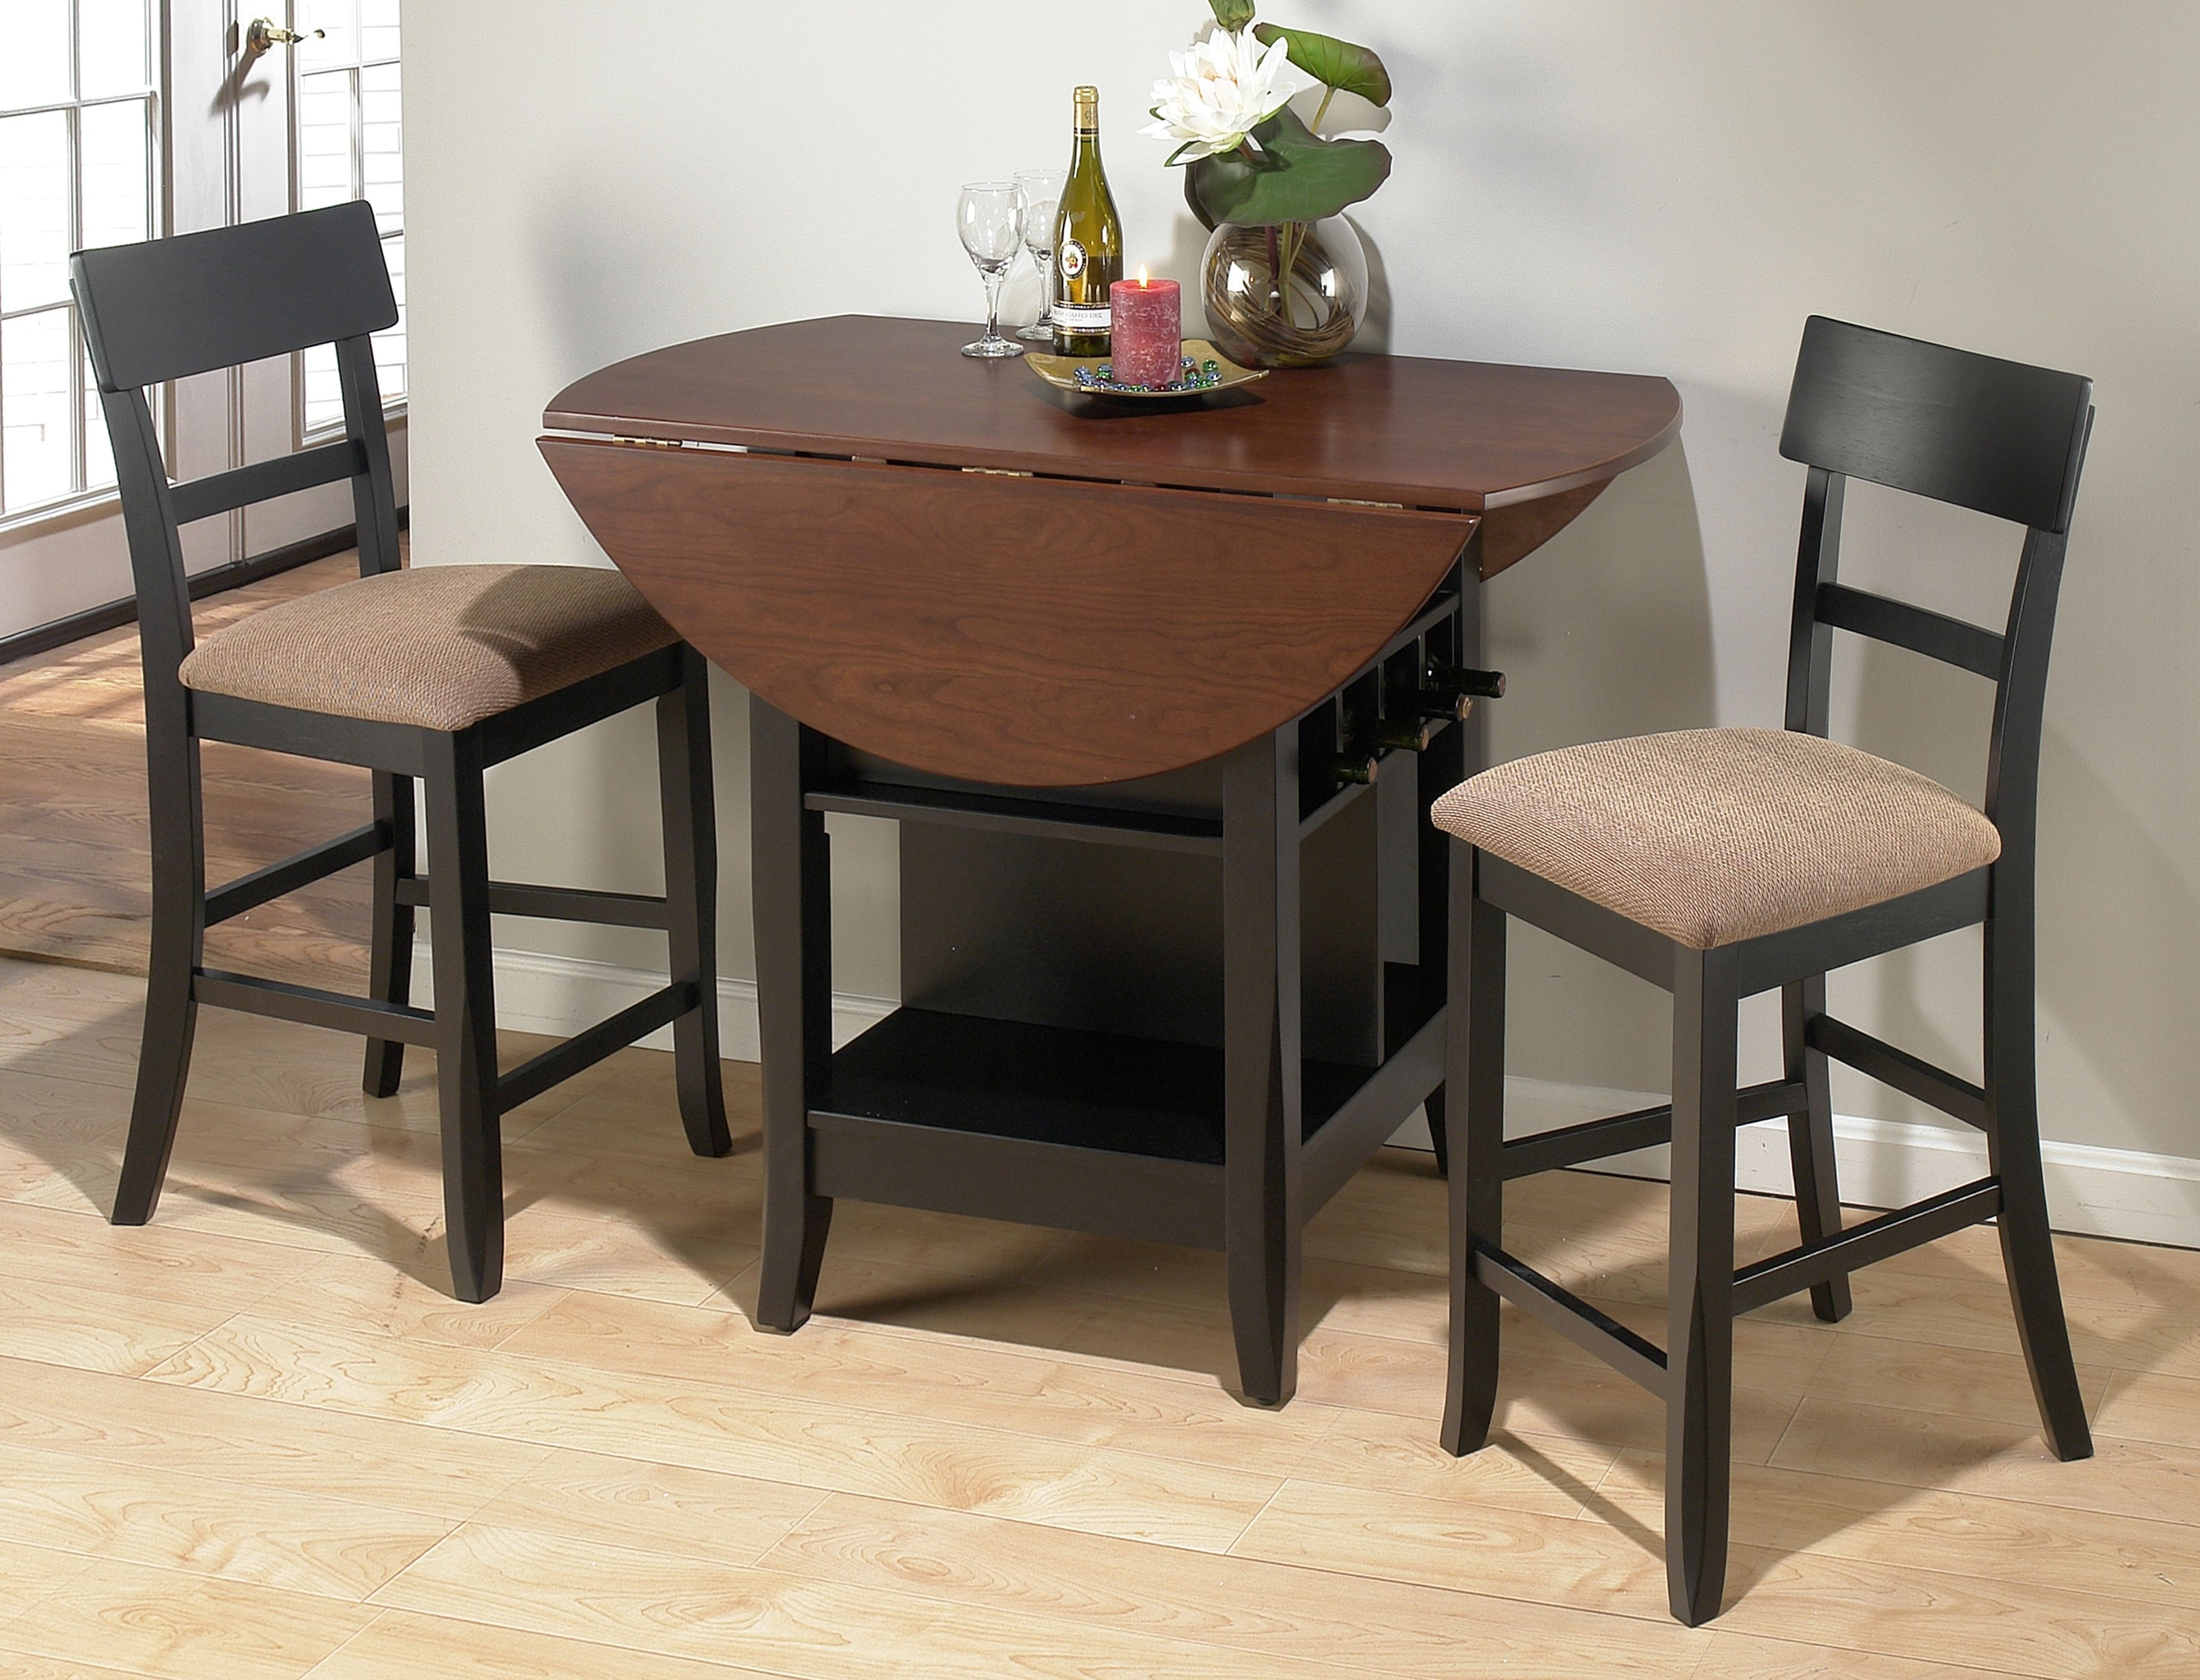 Most Recently Released Dining Tables For Two Within Dining Table Set For Two (View 11 of 25)